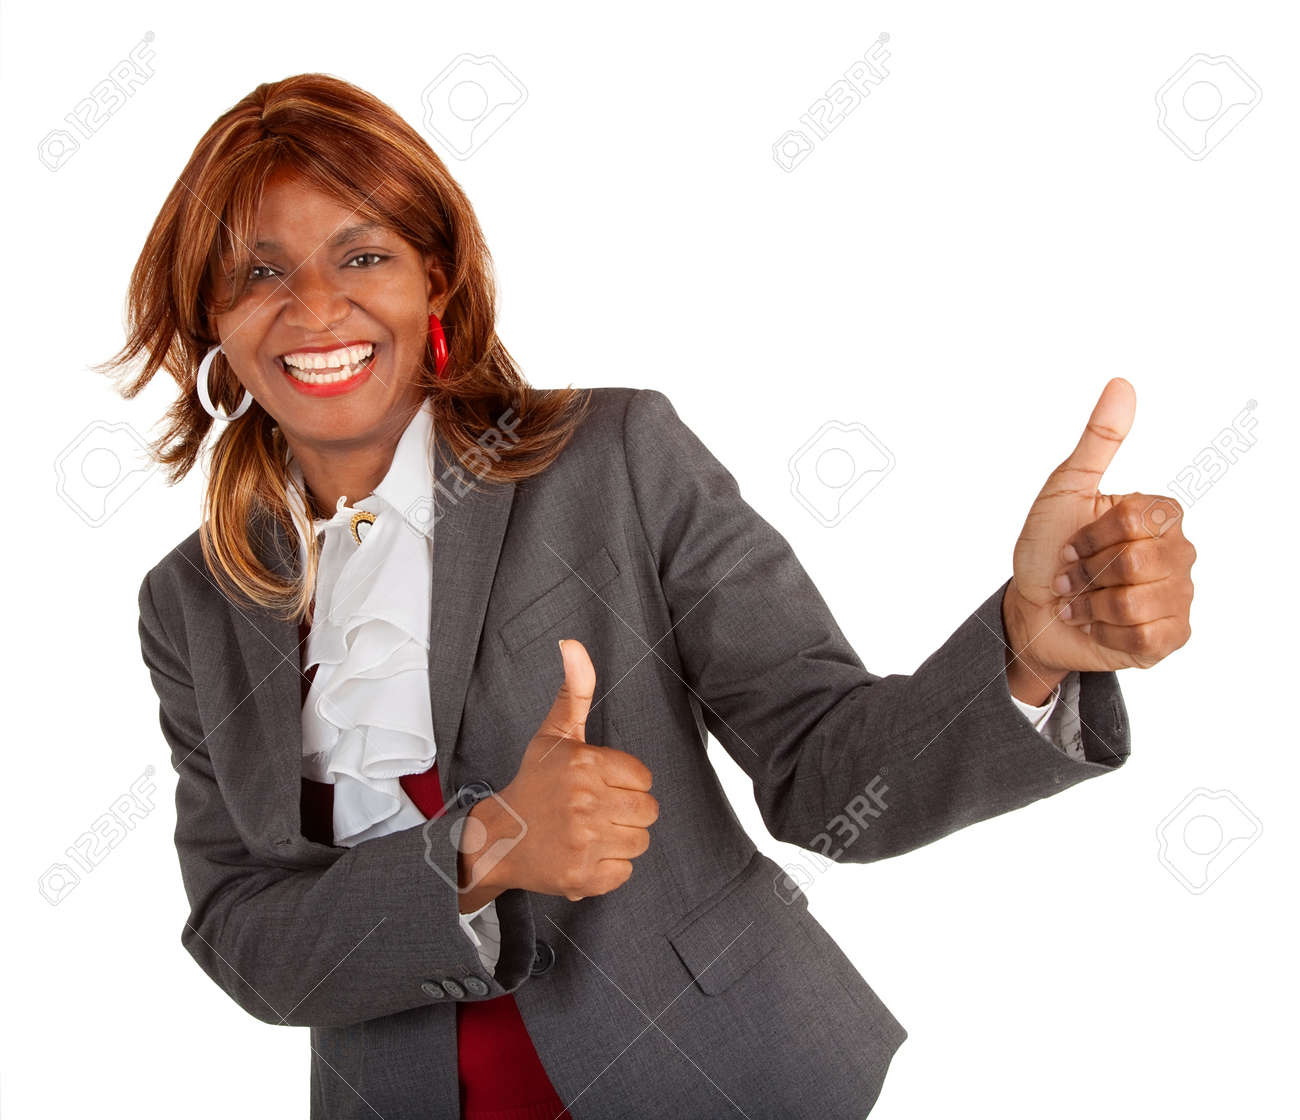 Two Thumbs Up Stock Photo - 18916137